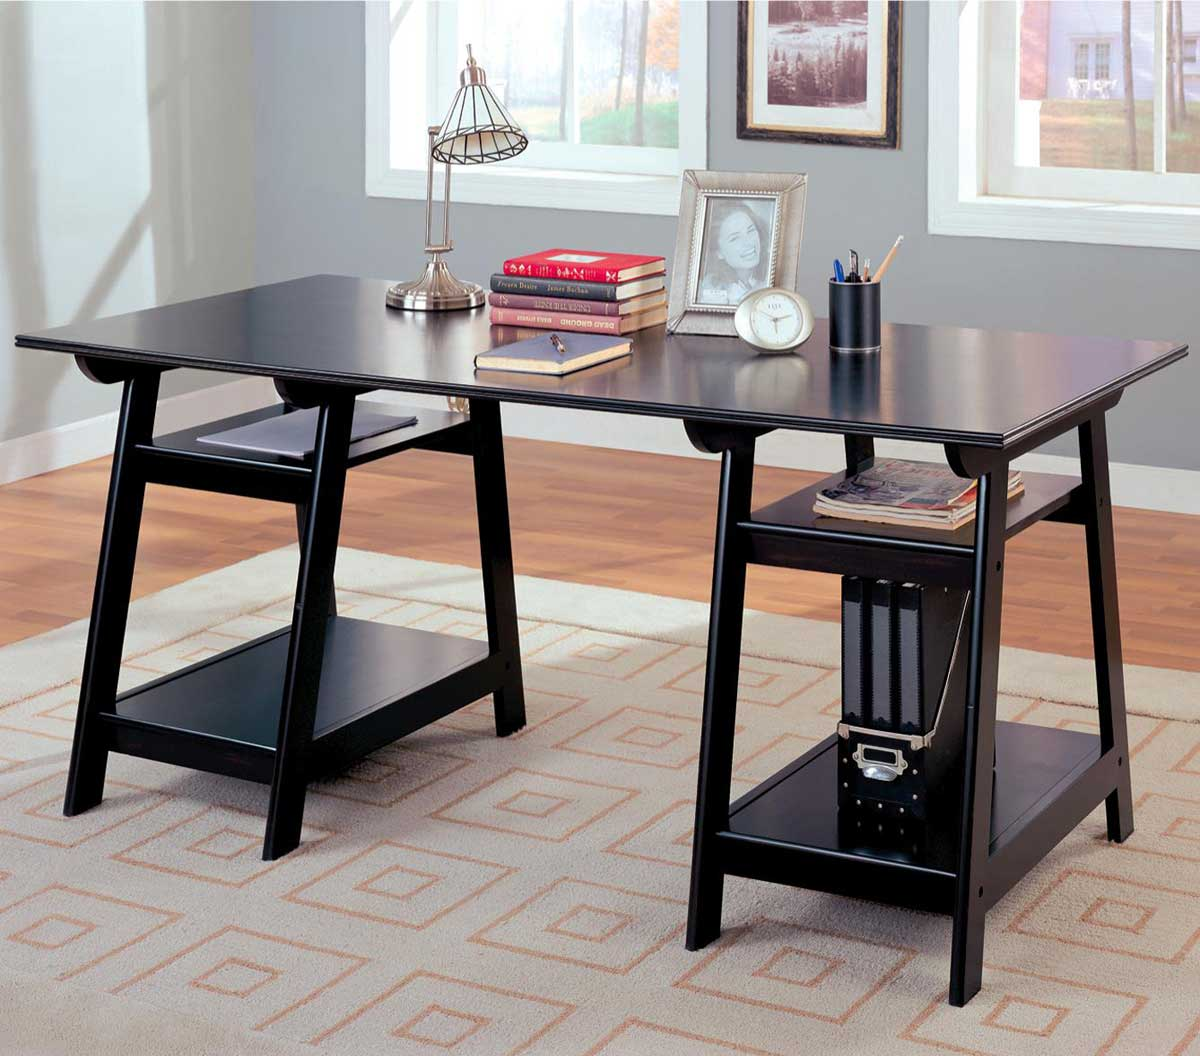 Glass office desk famous manufacturer reviews Home office desks